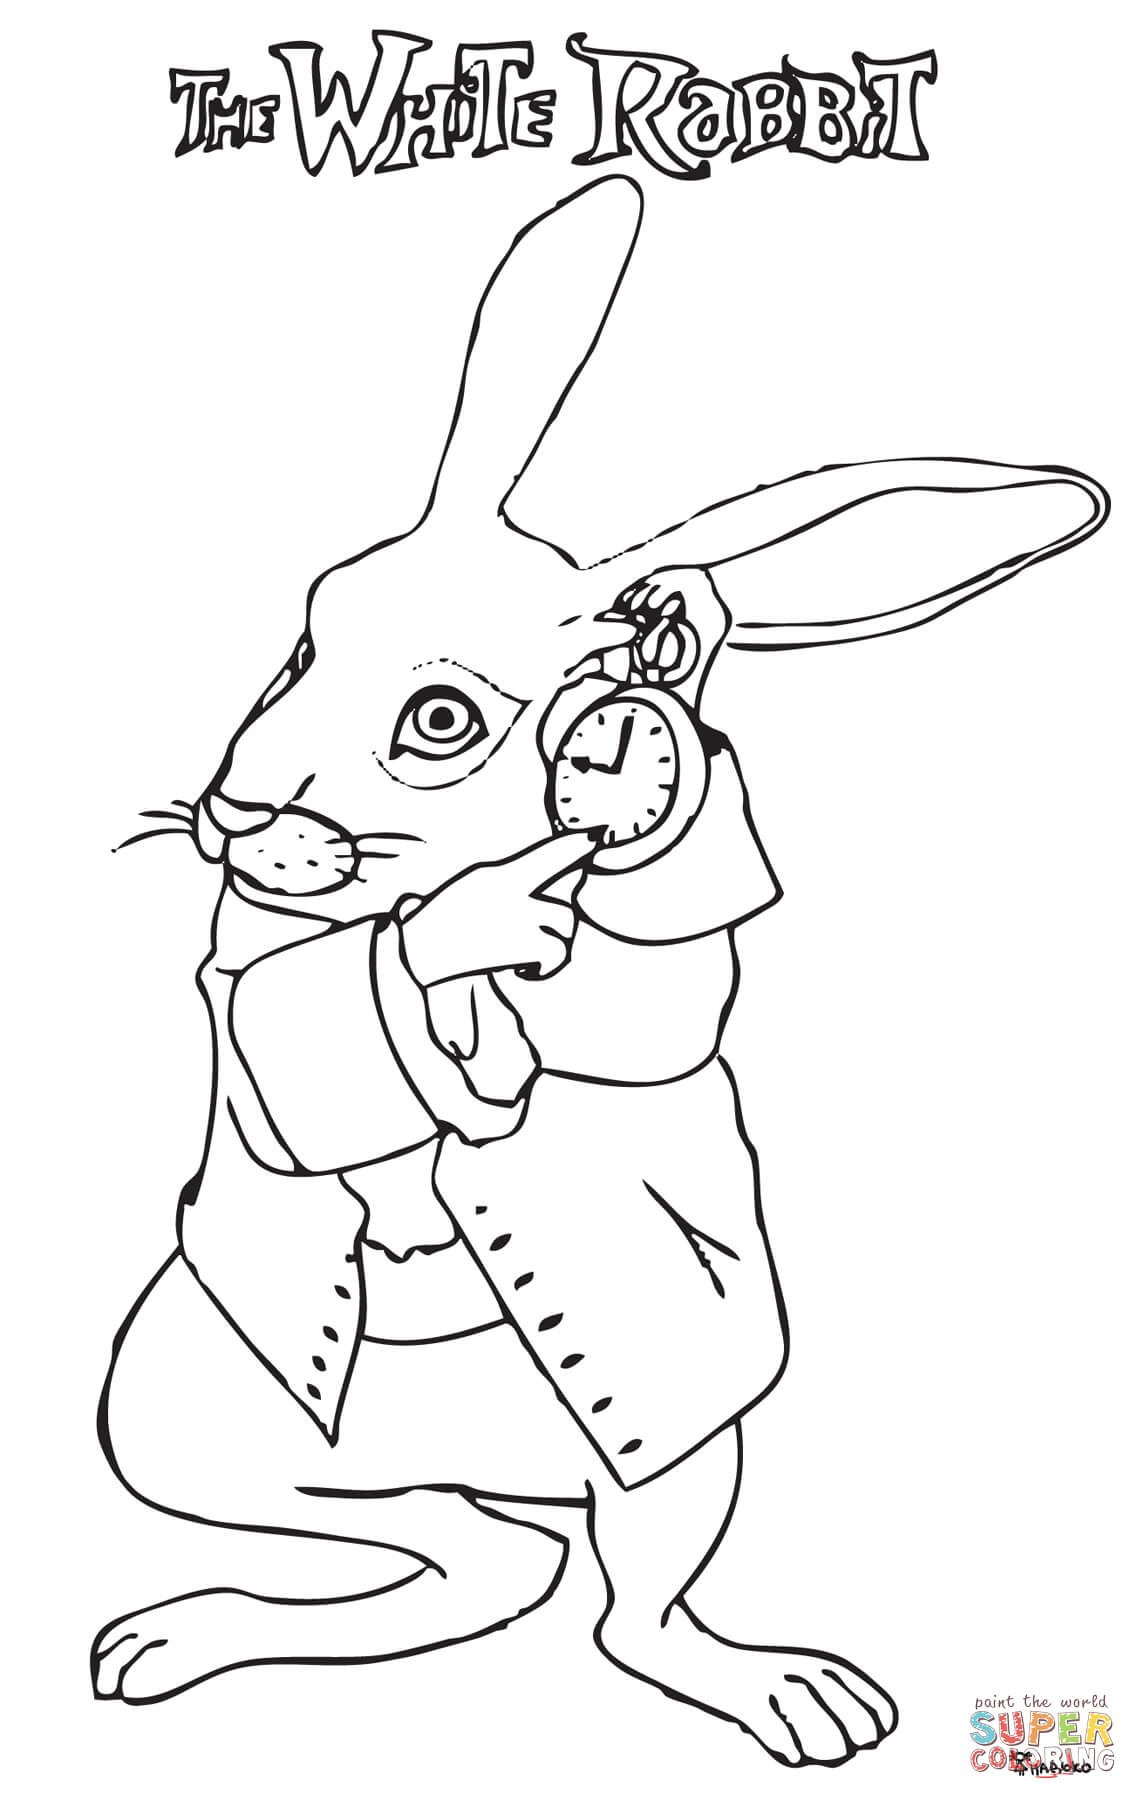 The White Rabbit In A Hurry Coloring Page